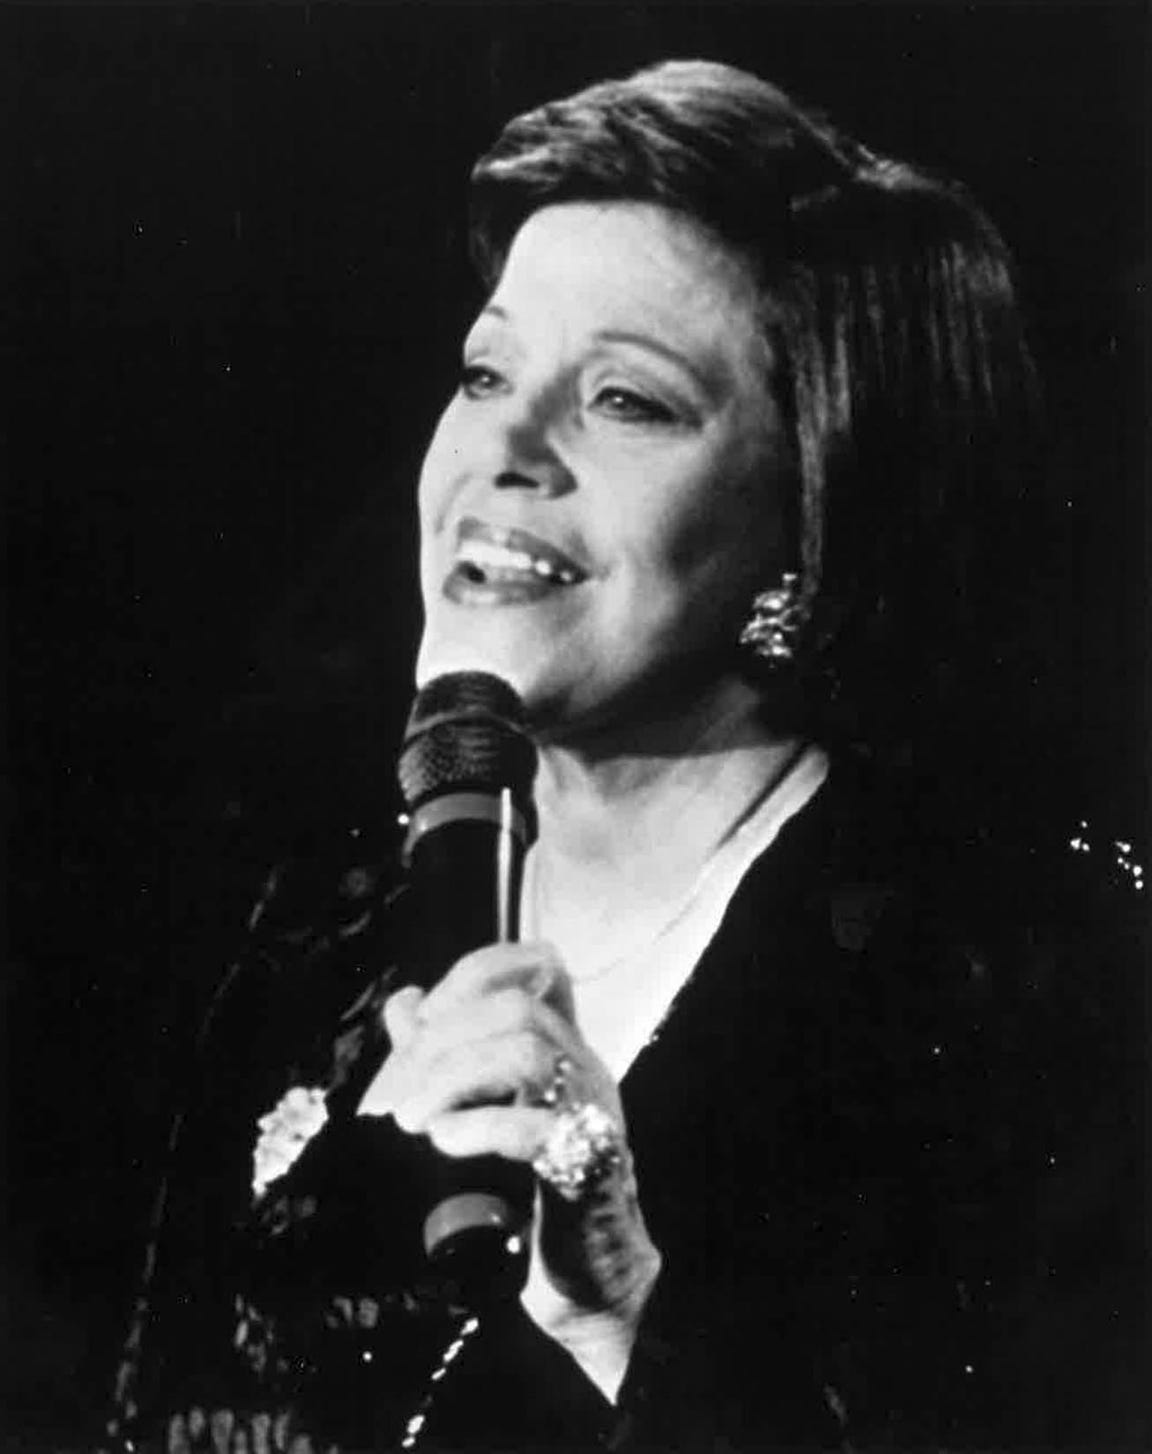 Kaye Ballard was known primarily as a comic, but she sang in top theaters and  supper clubs around the world, as well as many Las Vegas engagements.